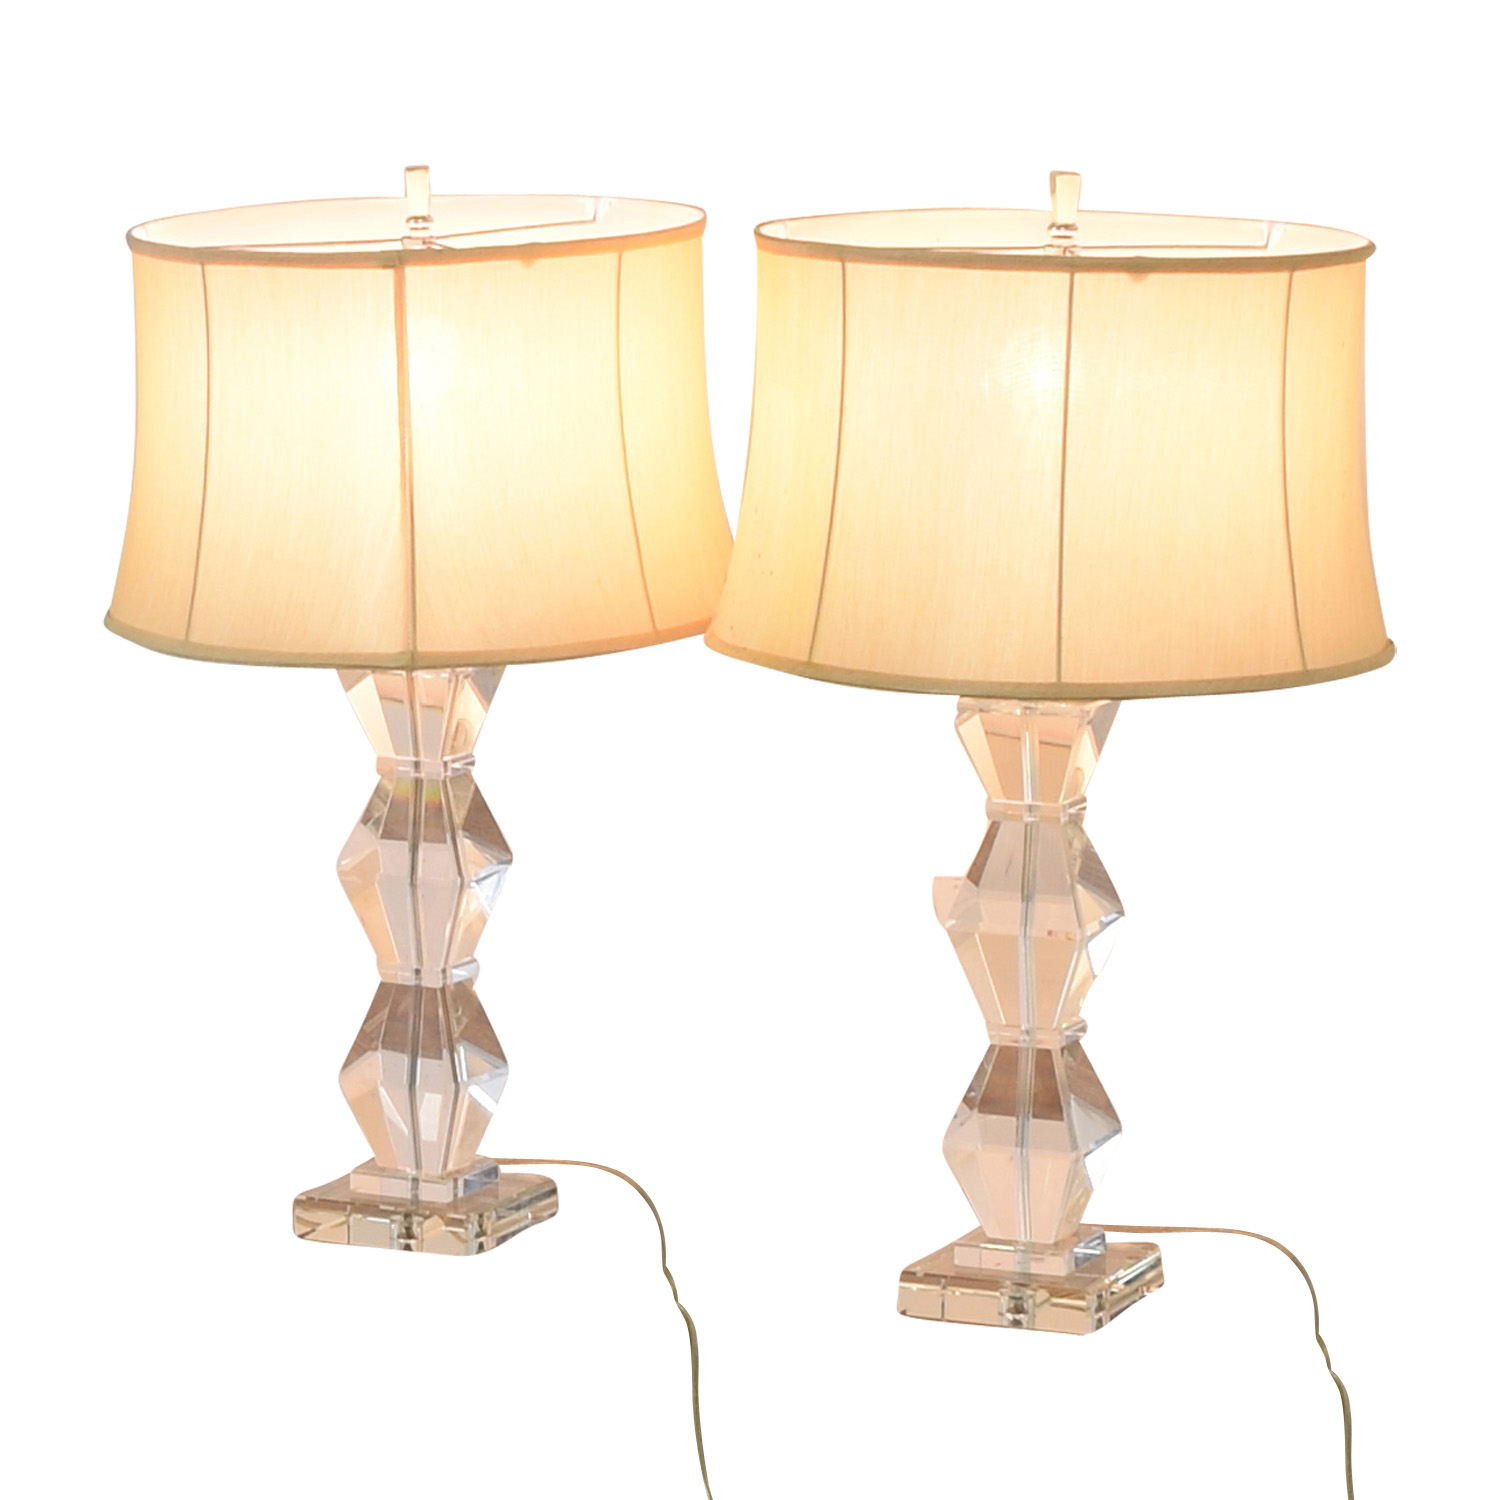 Ethan Allen Ethan Allen Geometric Crystal Table Lamps Lamps